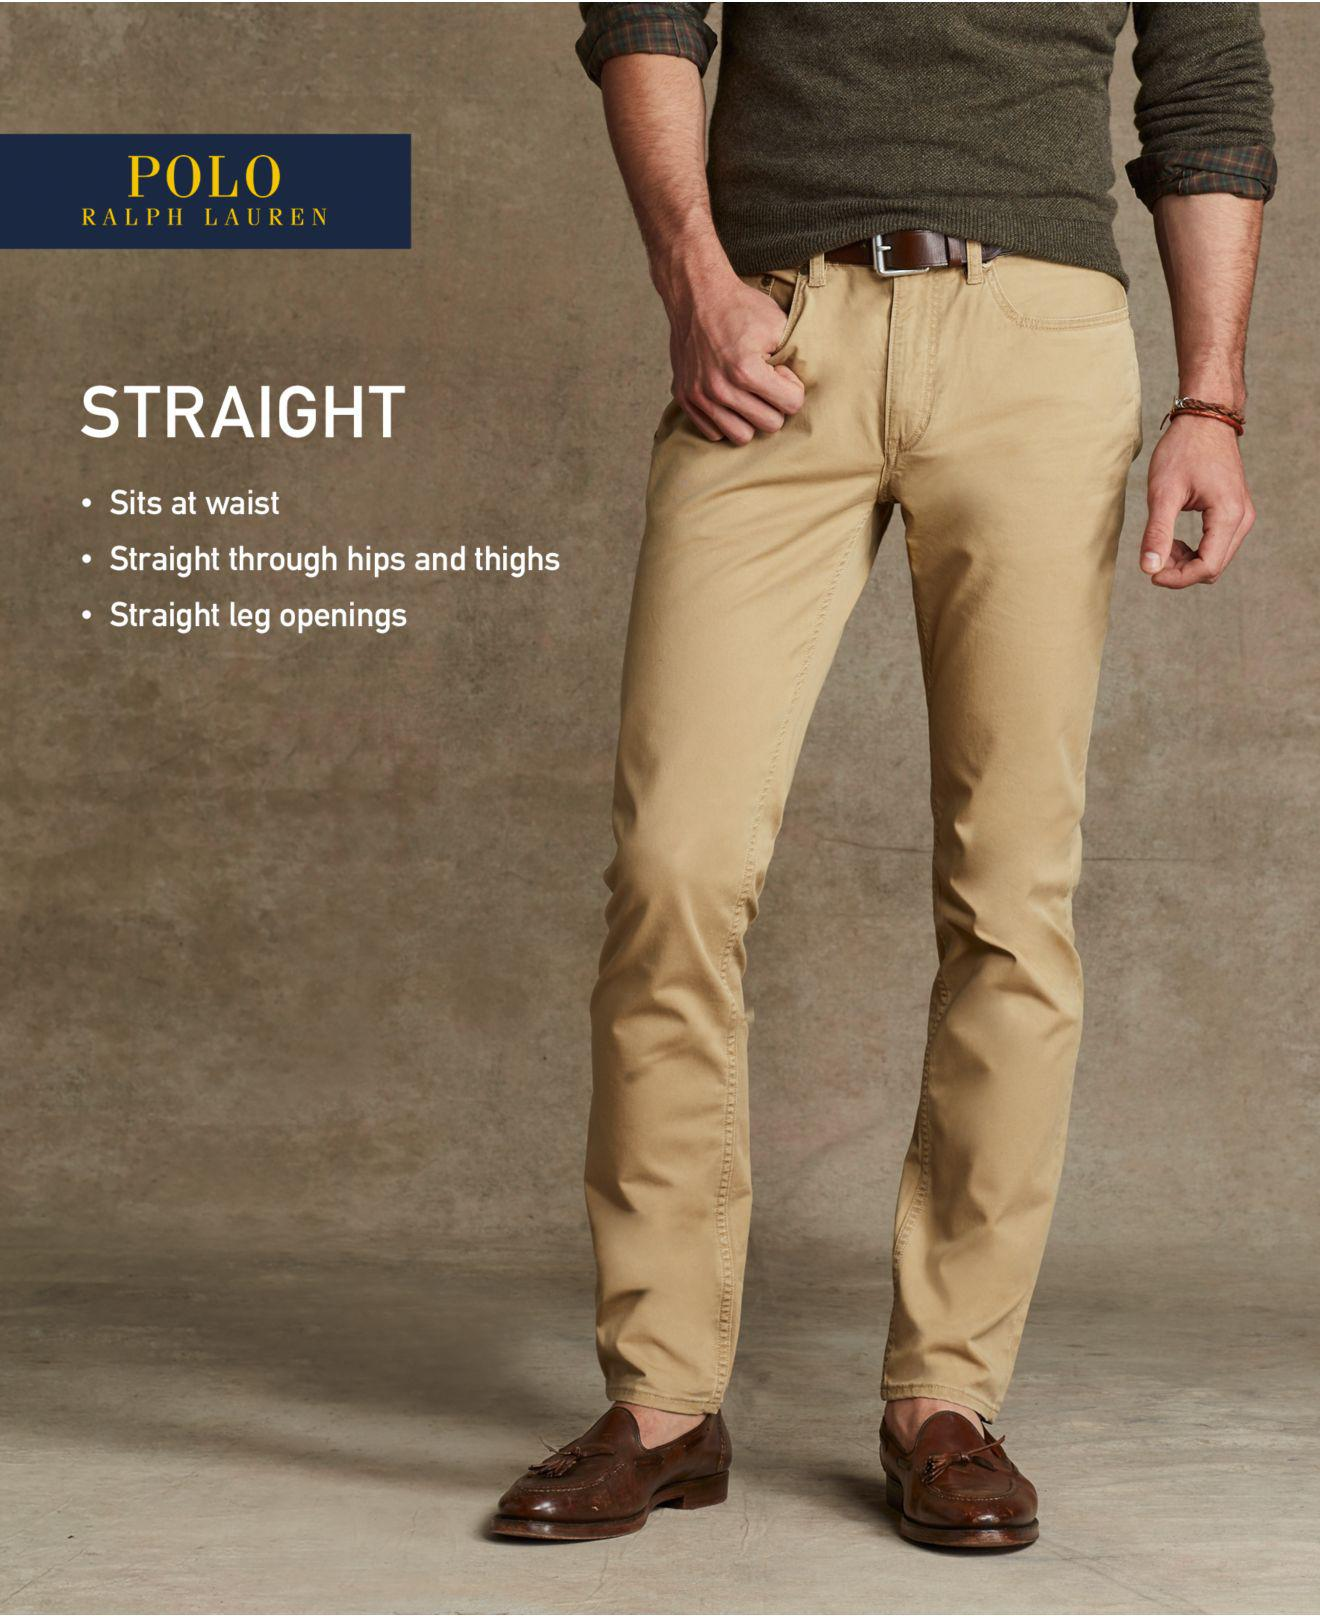 4439fa734fee61 Polo Ralph Lauren Mens Straight Fit Five Pocket Chino Pants